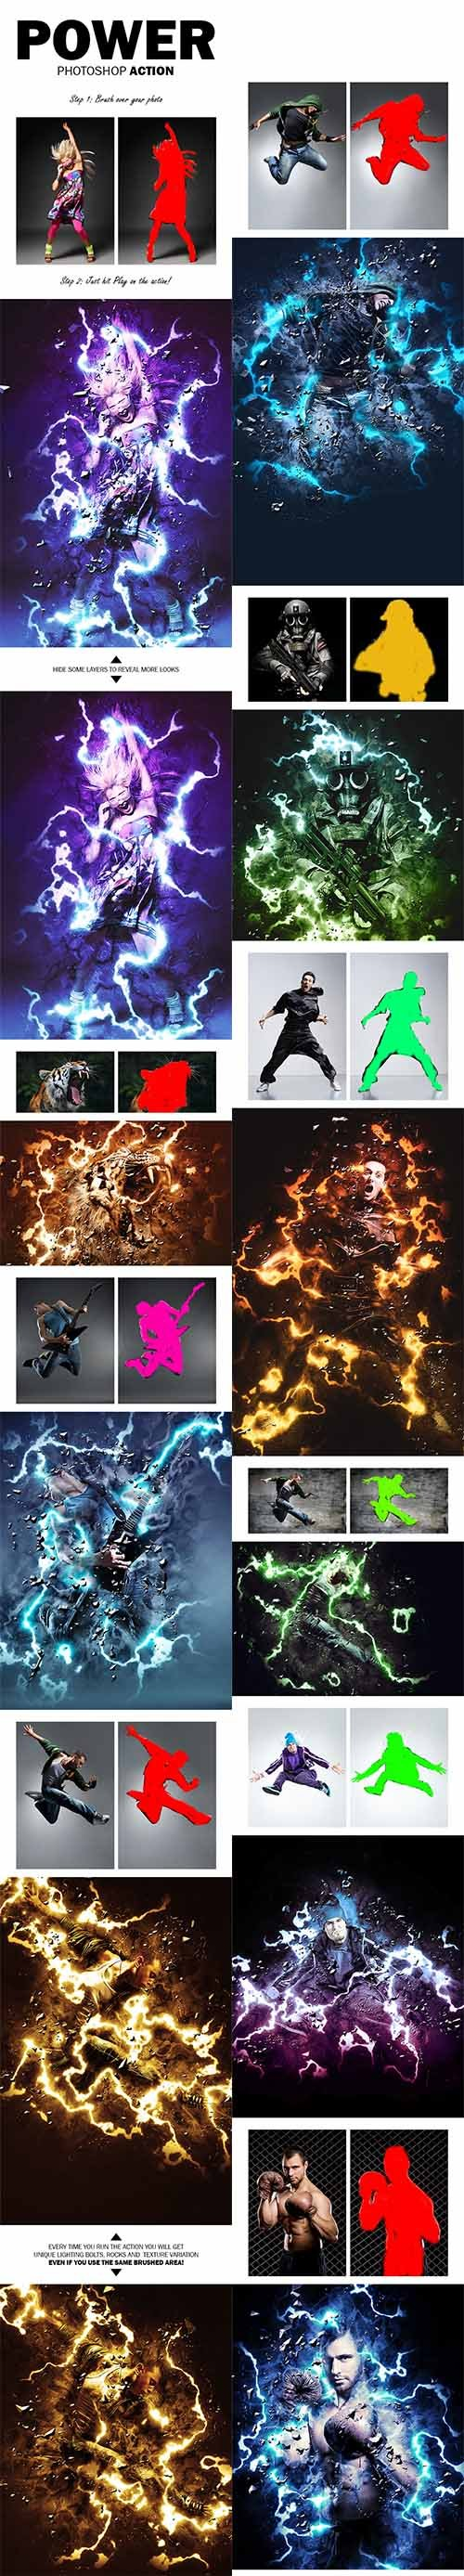 GraphicRiver - Power Photoshop Action 11093015